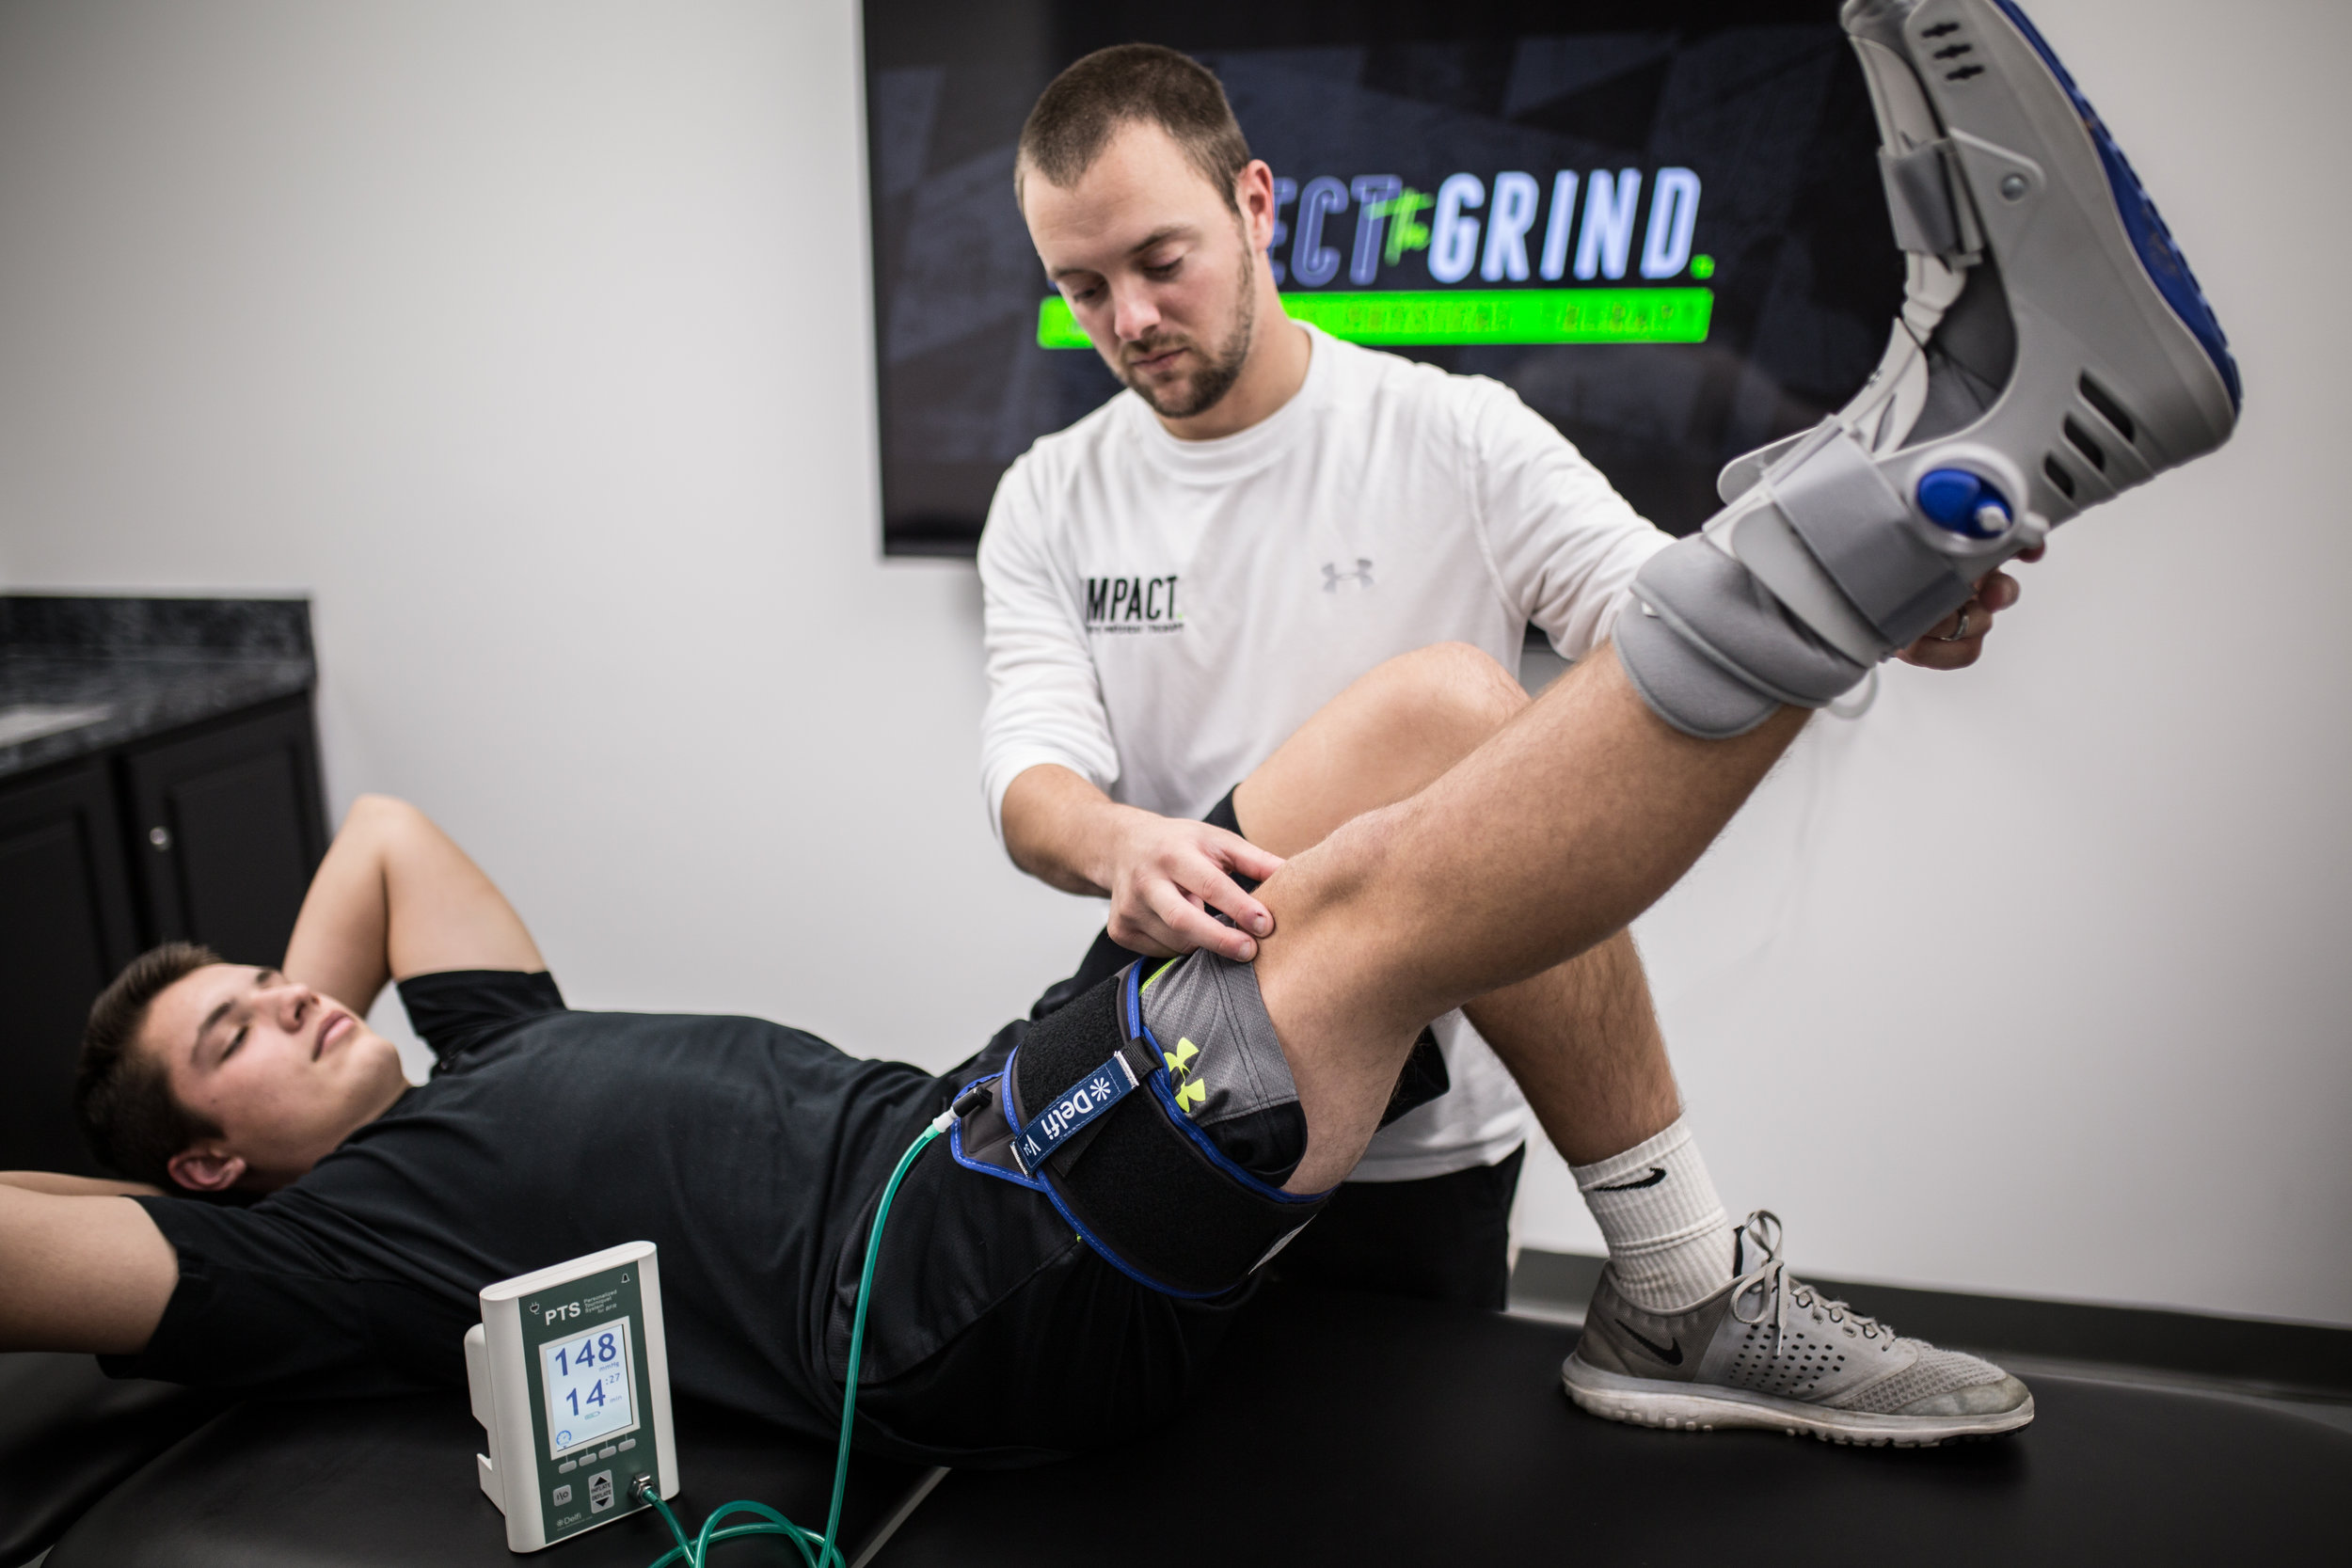 Howard county best sports physical therapy, Baltimore sports physical therapy, sports rehab, Elkridge physical therapy, Columbia physical therapy, ACL rehab, blood flow restriction training, blood flow restriction Baltimore, rehab after surgery